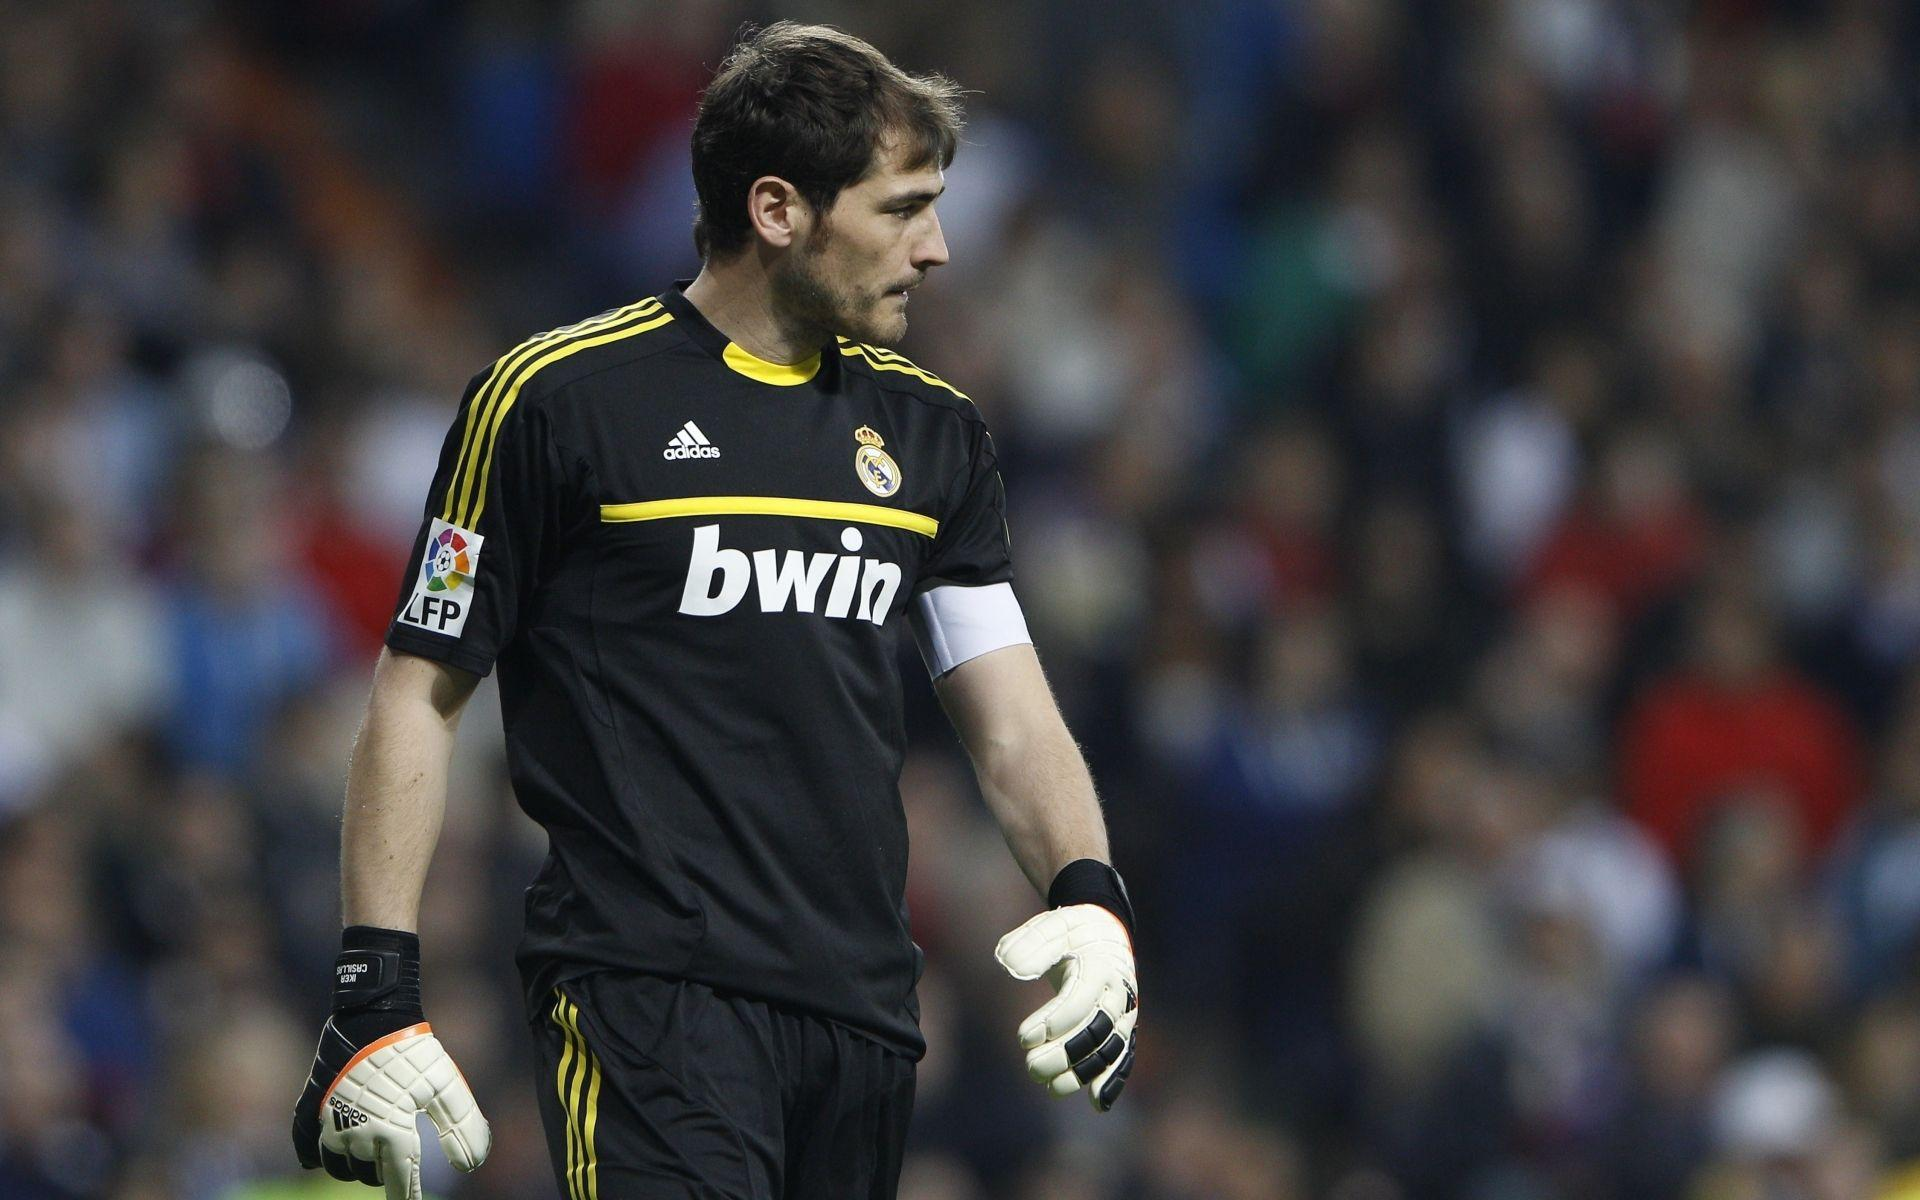 Real Madrid Iker Casillas Wallpapers - 1920x1200 - 1478330